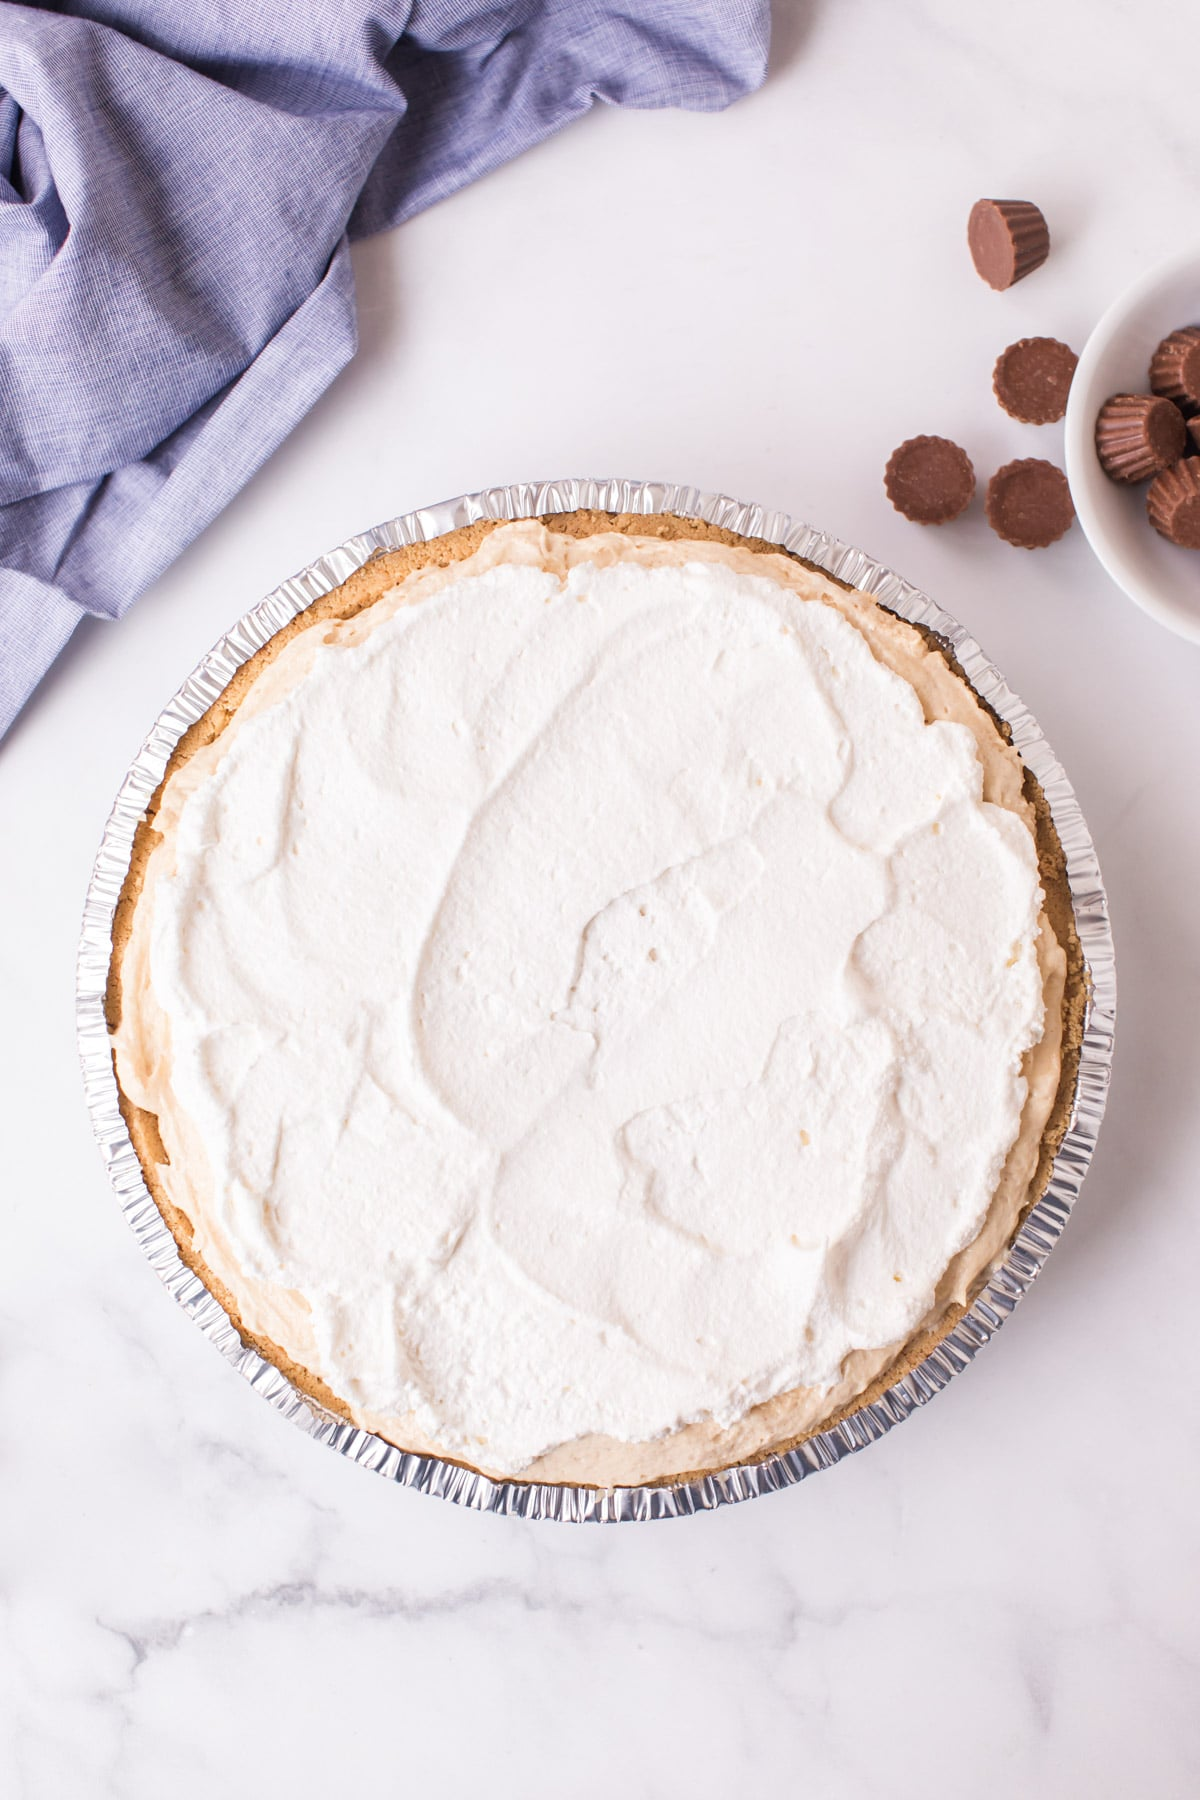 Whipped topping on a pie crust